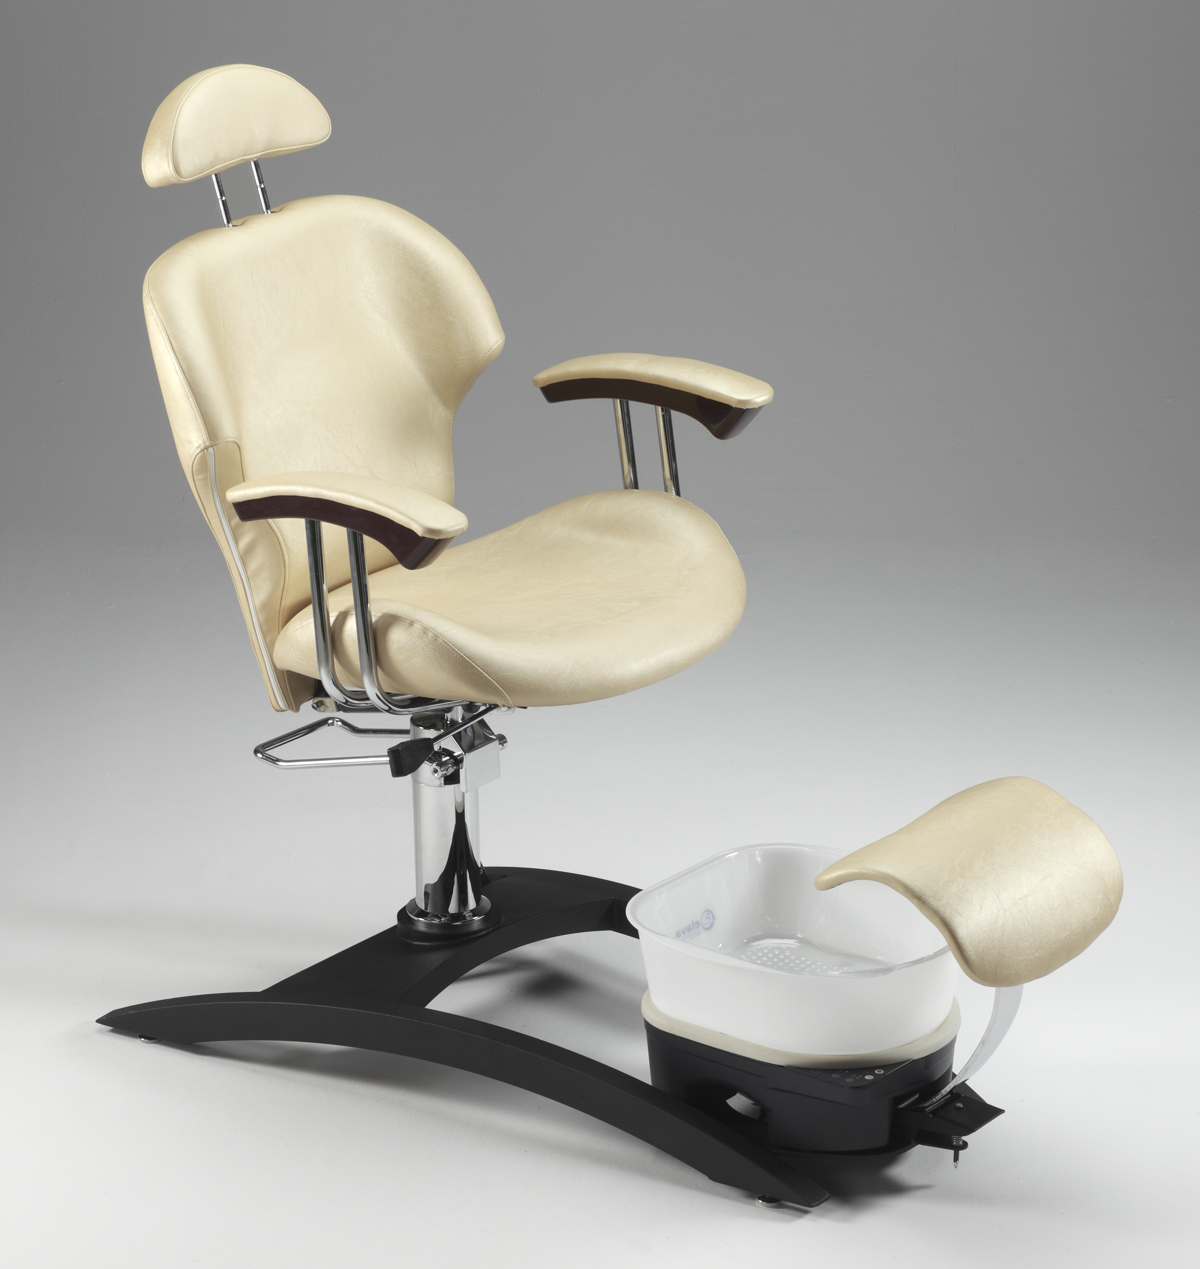 portable pedicure chair no plumbing spa pedicure chair foot spa sofa china DS-2013